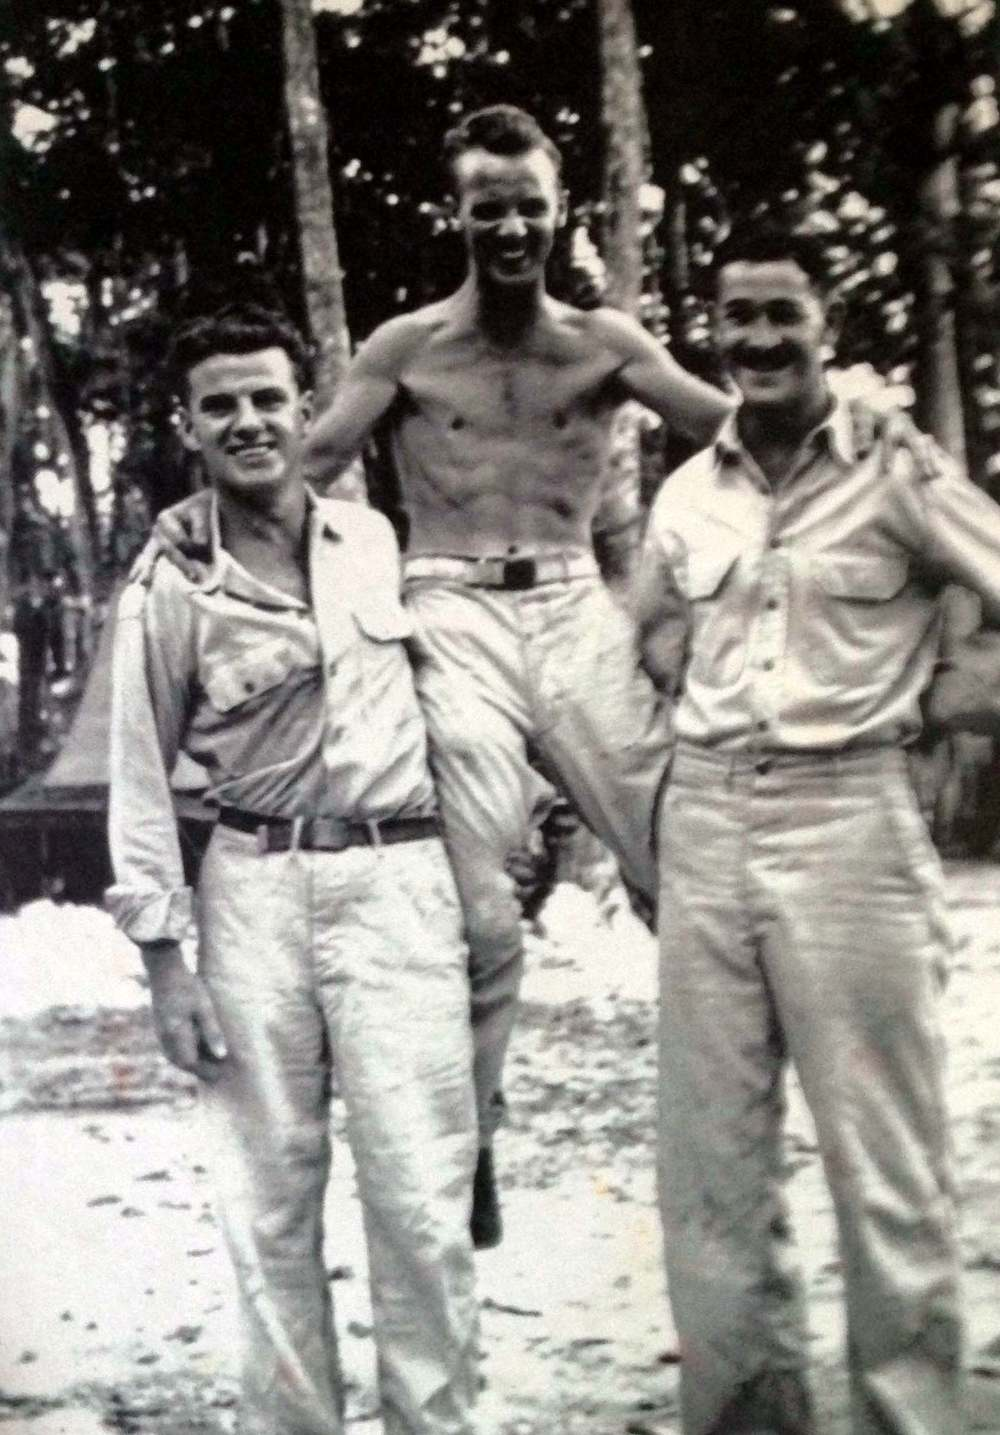 Jack with two of his friends in the South Pacific.